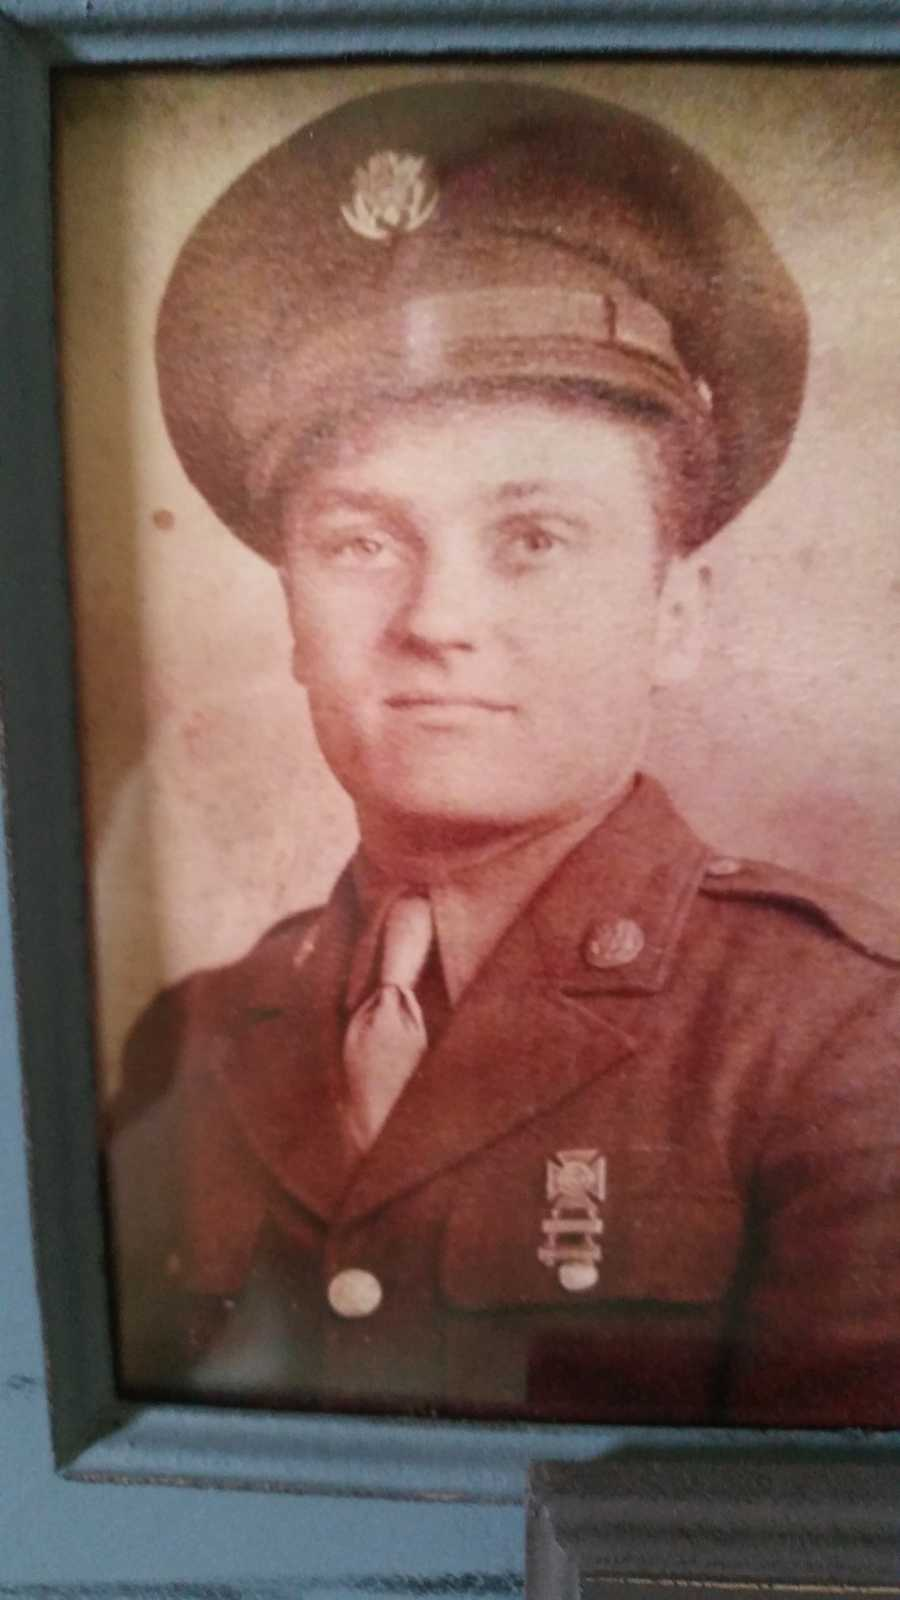 Harold P. Brauckman served in Germany during WWII.